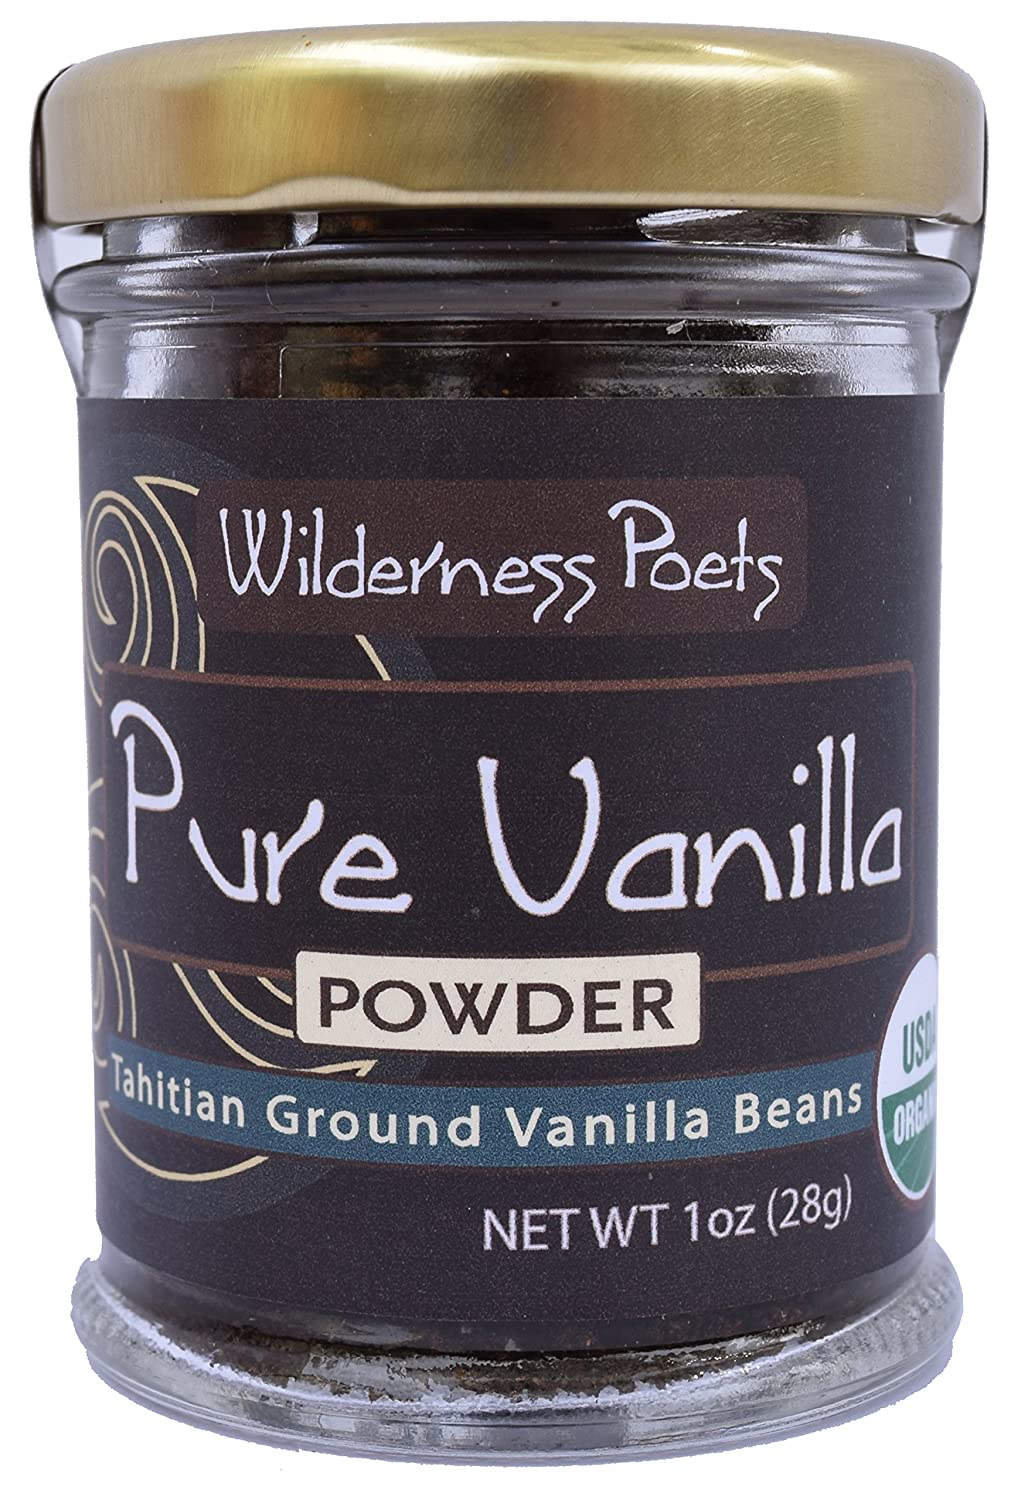 Pure Organic Vanilla Bean Powder Jar